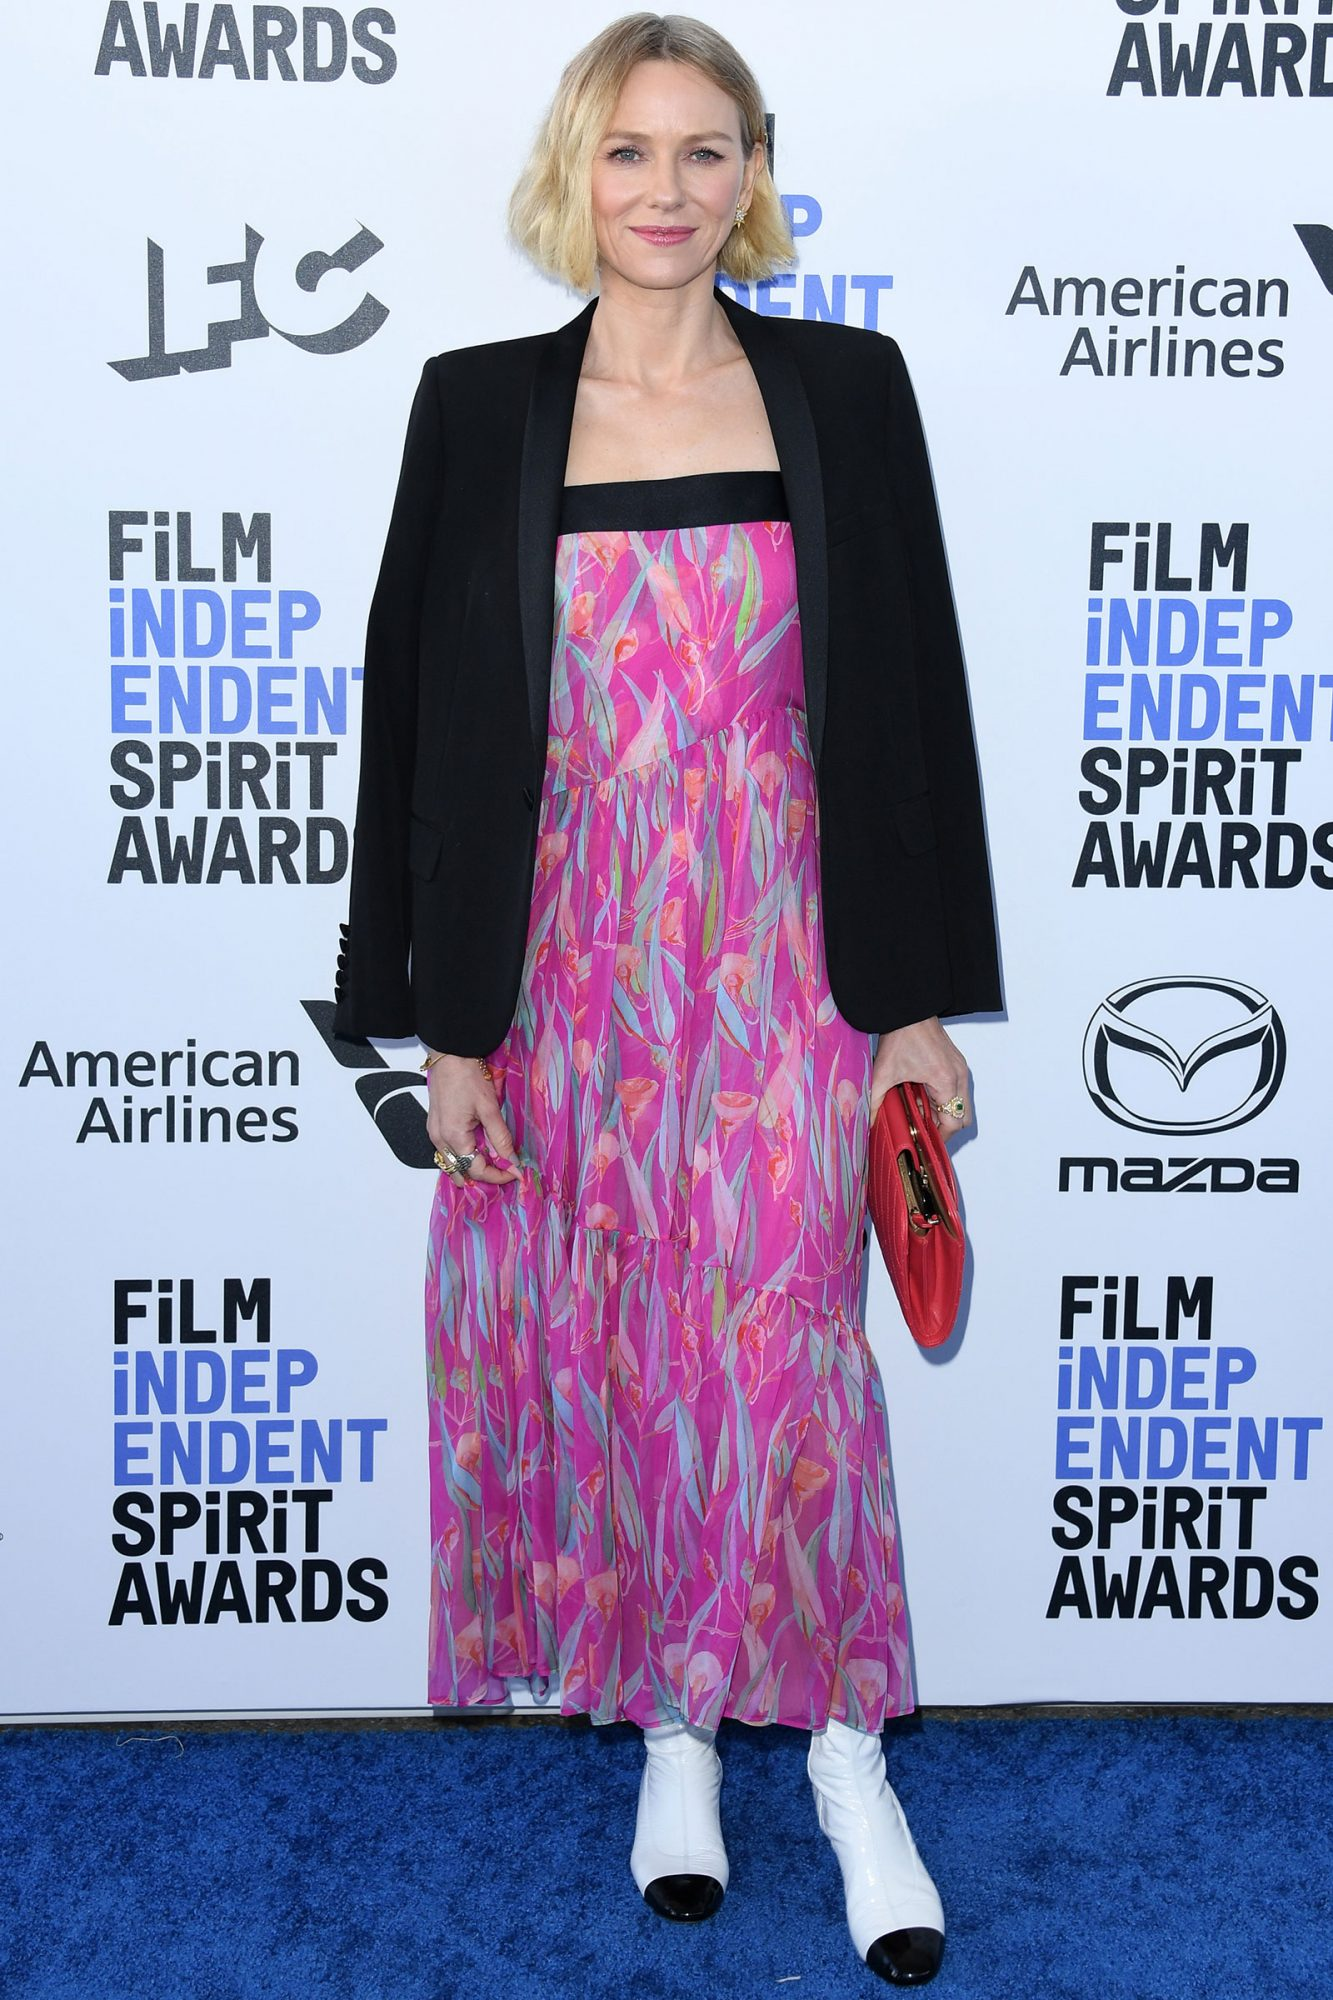 Independent Spirit Awards Arrivals